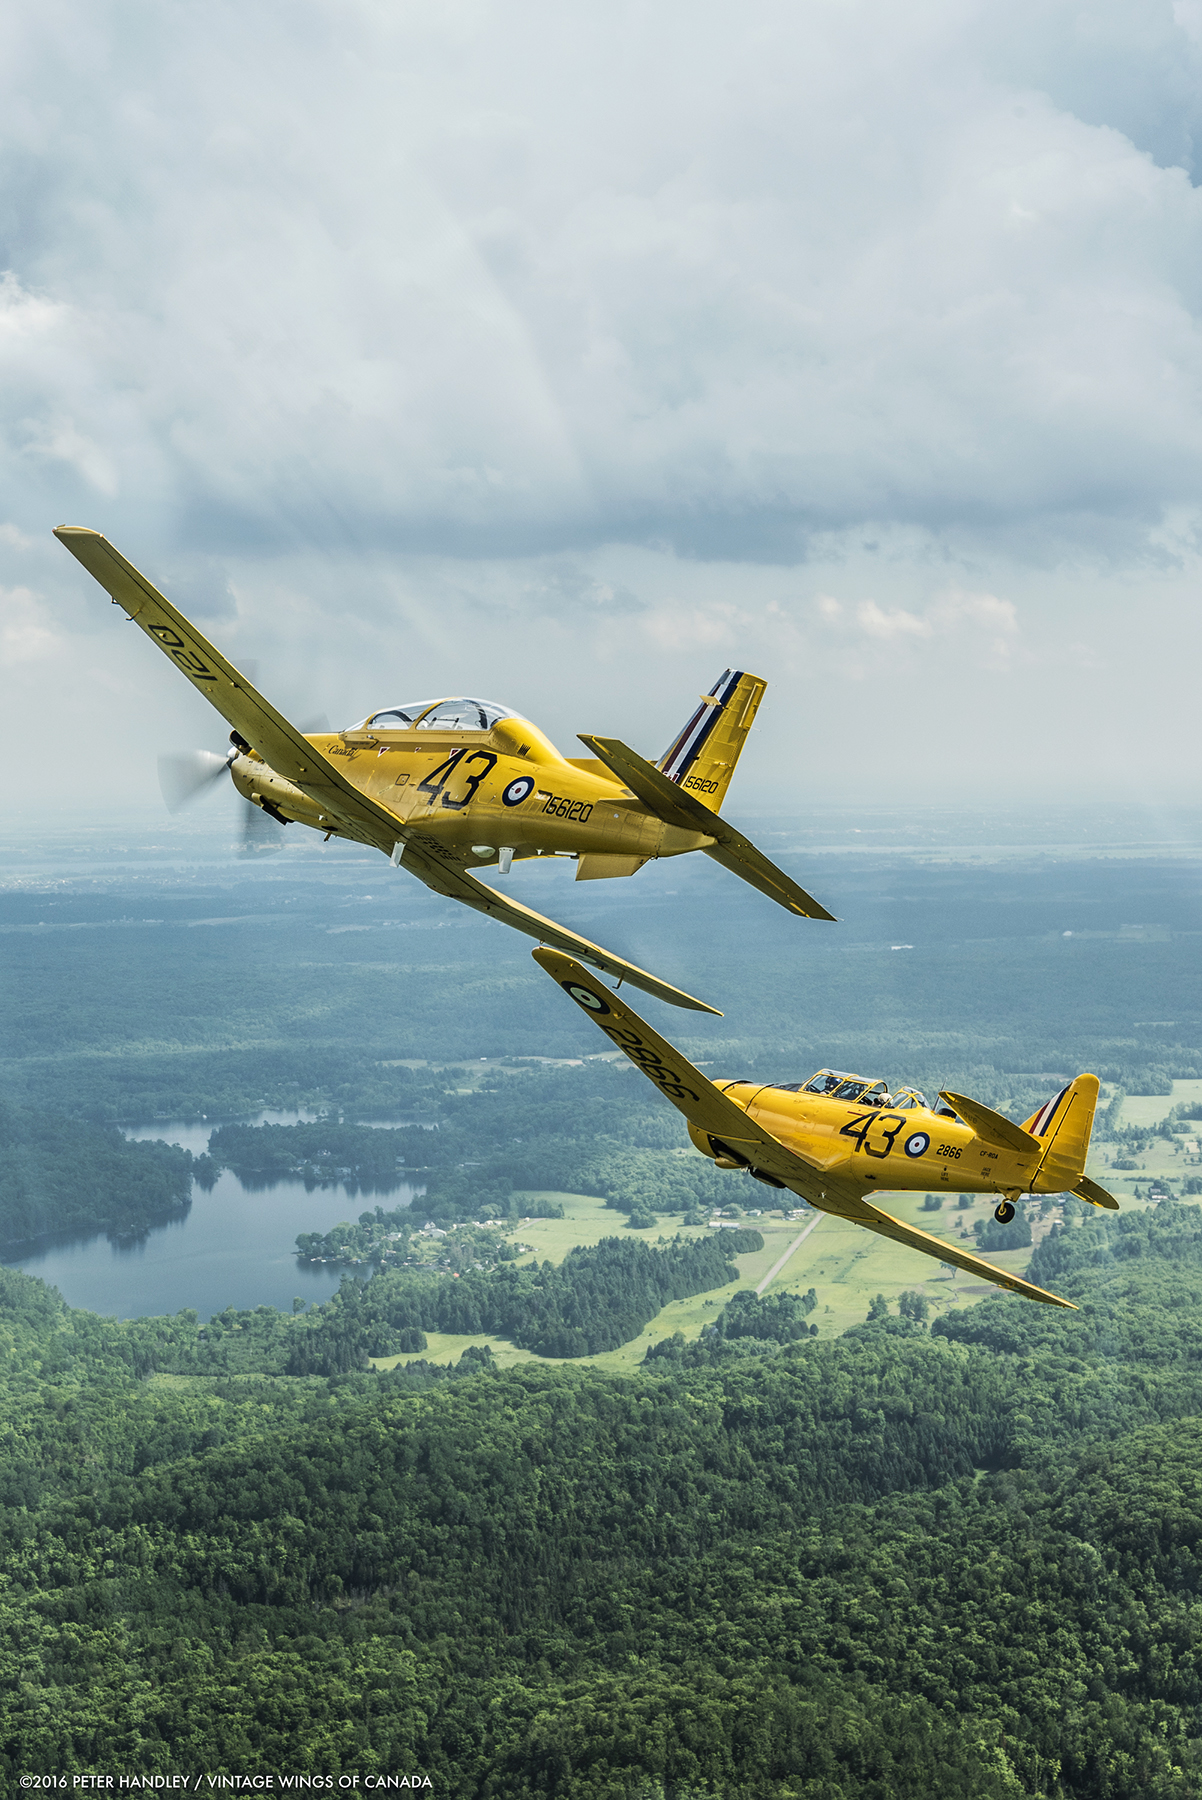 Through the diligent efforts of many, and in cooperation with NATO Flying Training in Canada (NFTC) program partner, CAE, the aircraft has been painted in a yellow Second World War British Commonwealth Air Training Plan paint scheme to commemorate the BCATP. PHOTO: ©2016 Peter Handley / Vintage Wings of Canada